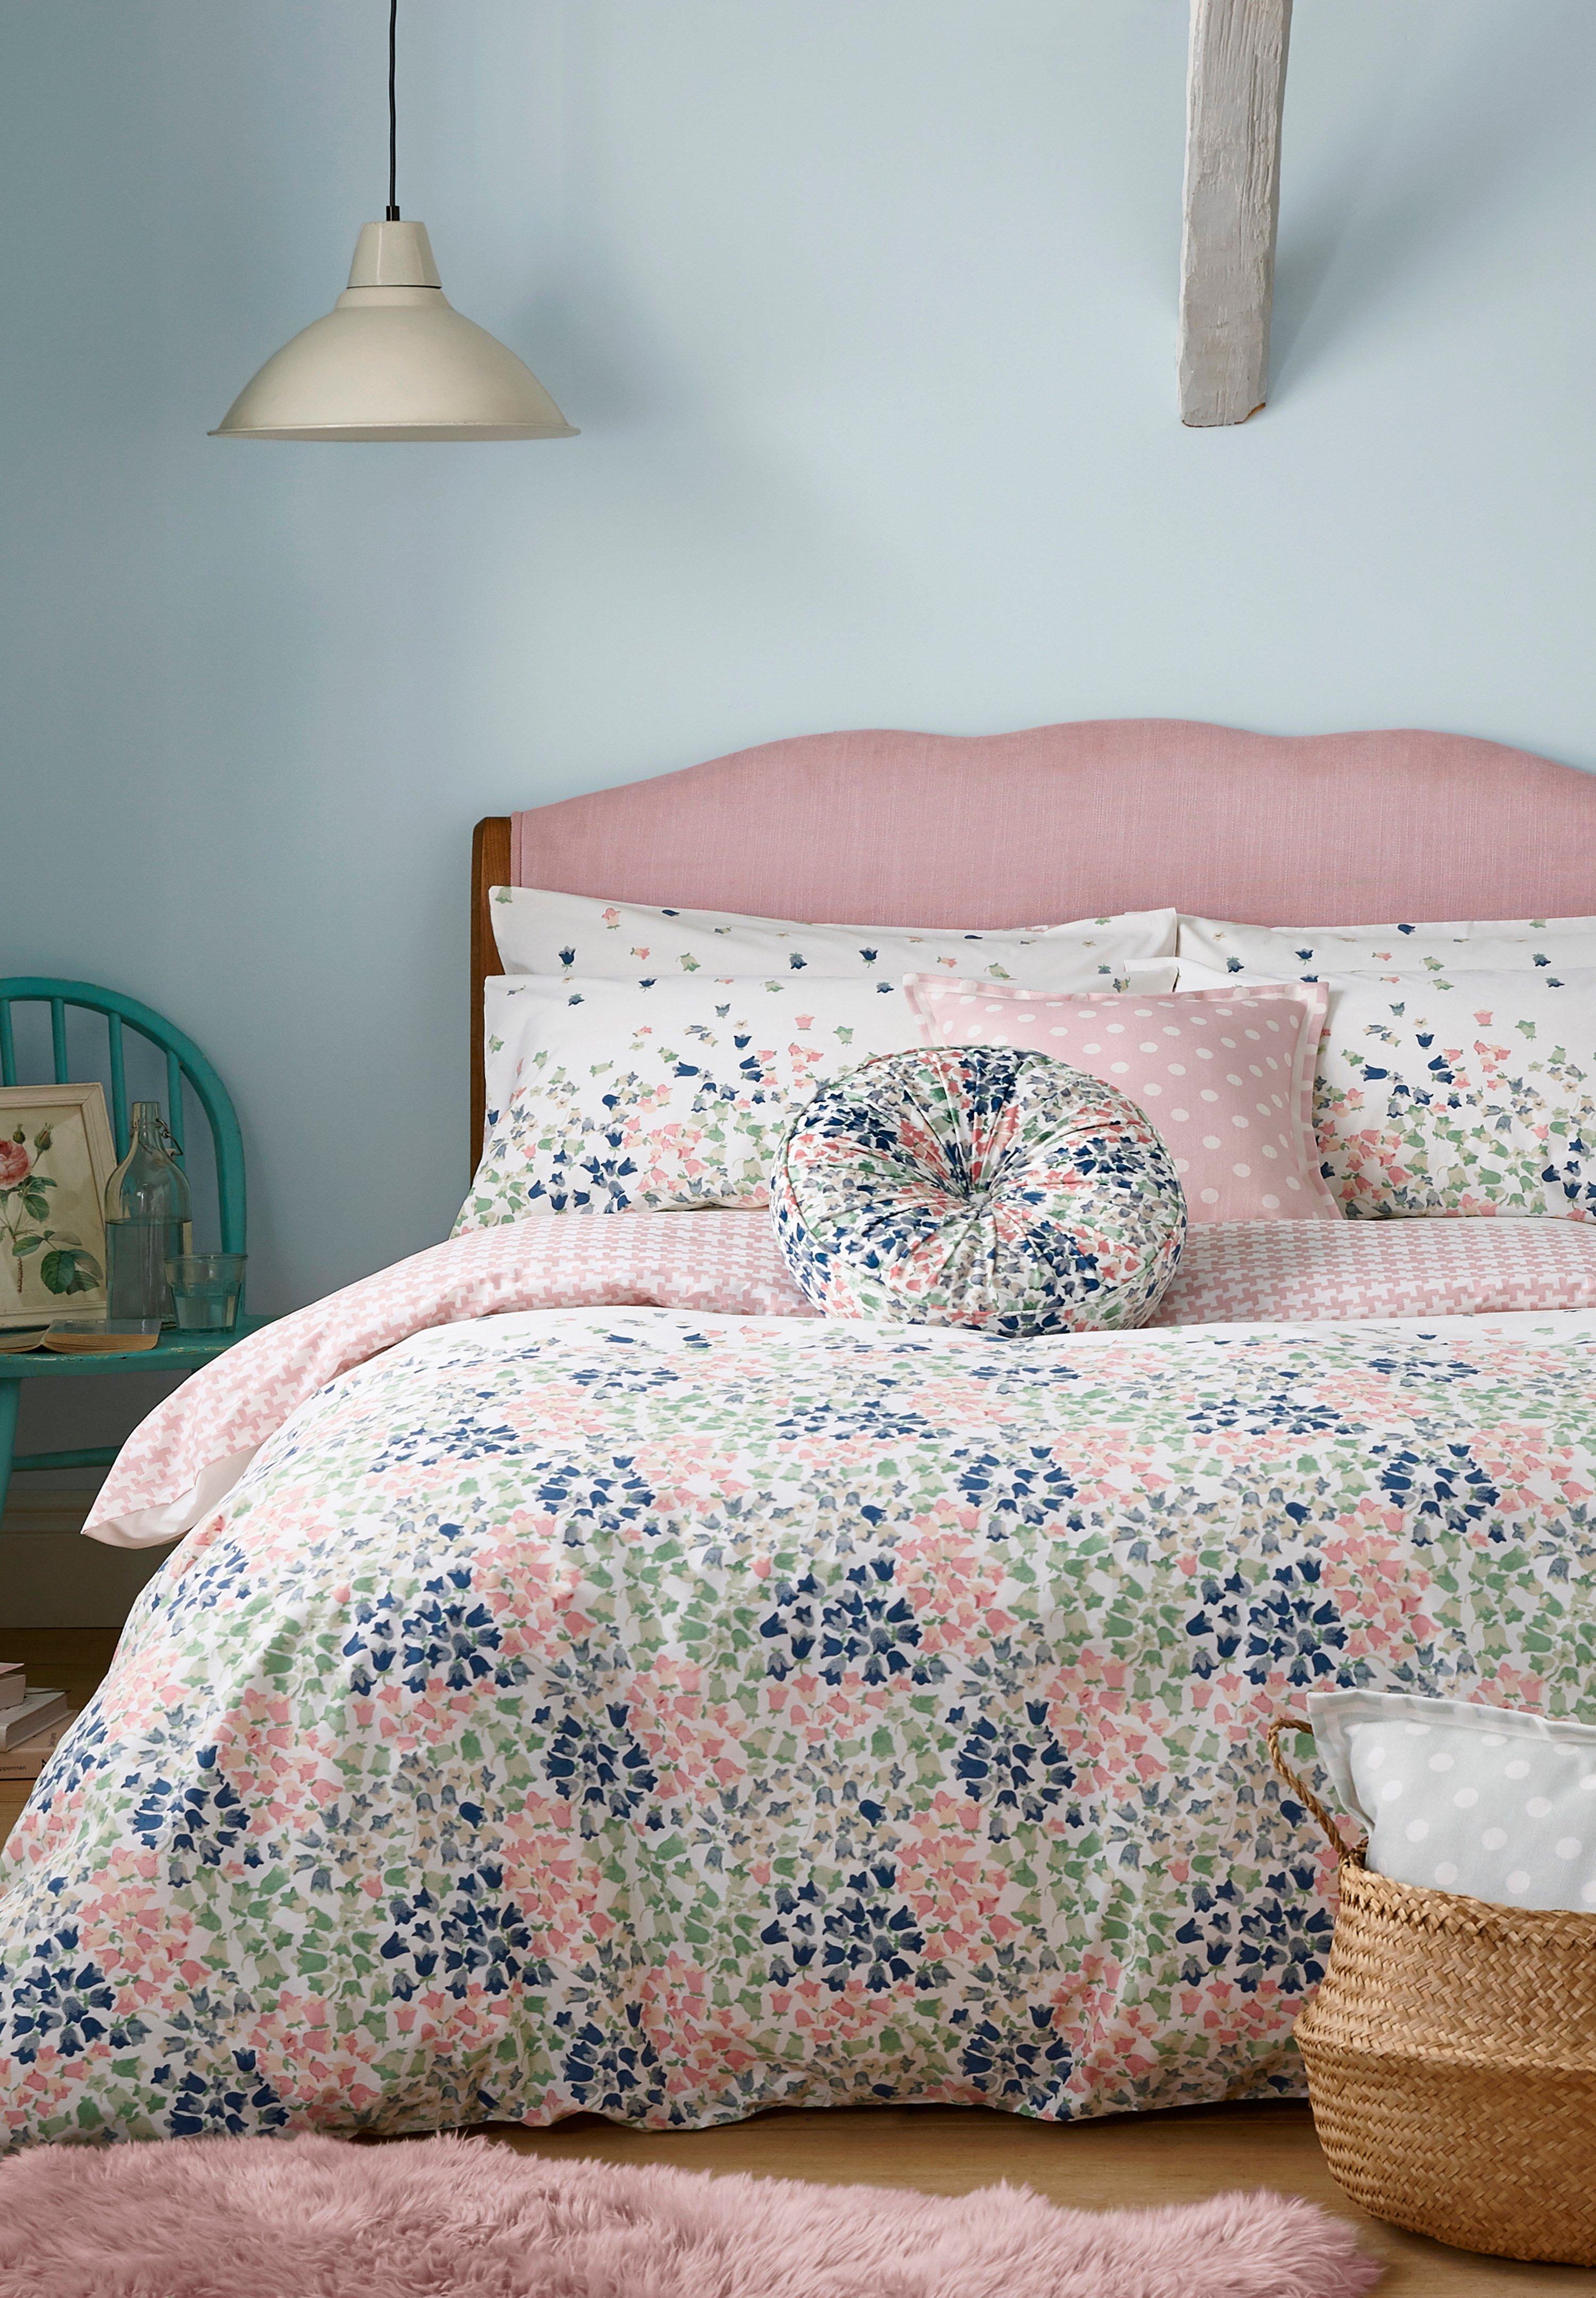 Cath Kidston Painted Bluebell Bedding Set in Warm Cream, Single